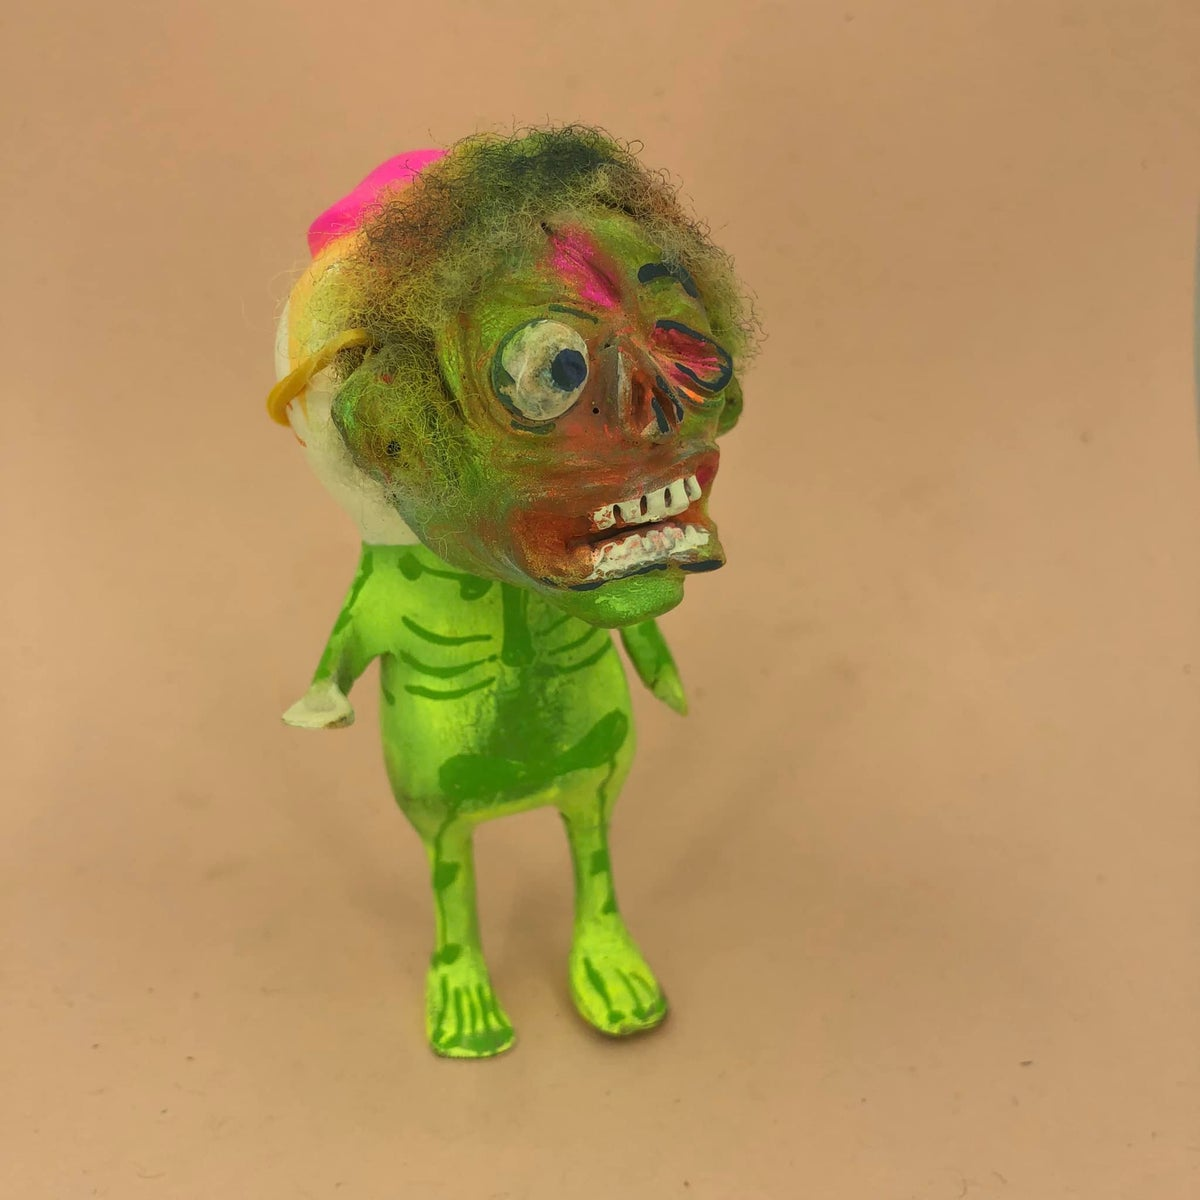 Image of Trick or treat bandit #1 Zombie  one of a kind sculpture